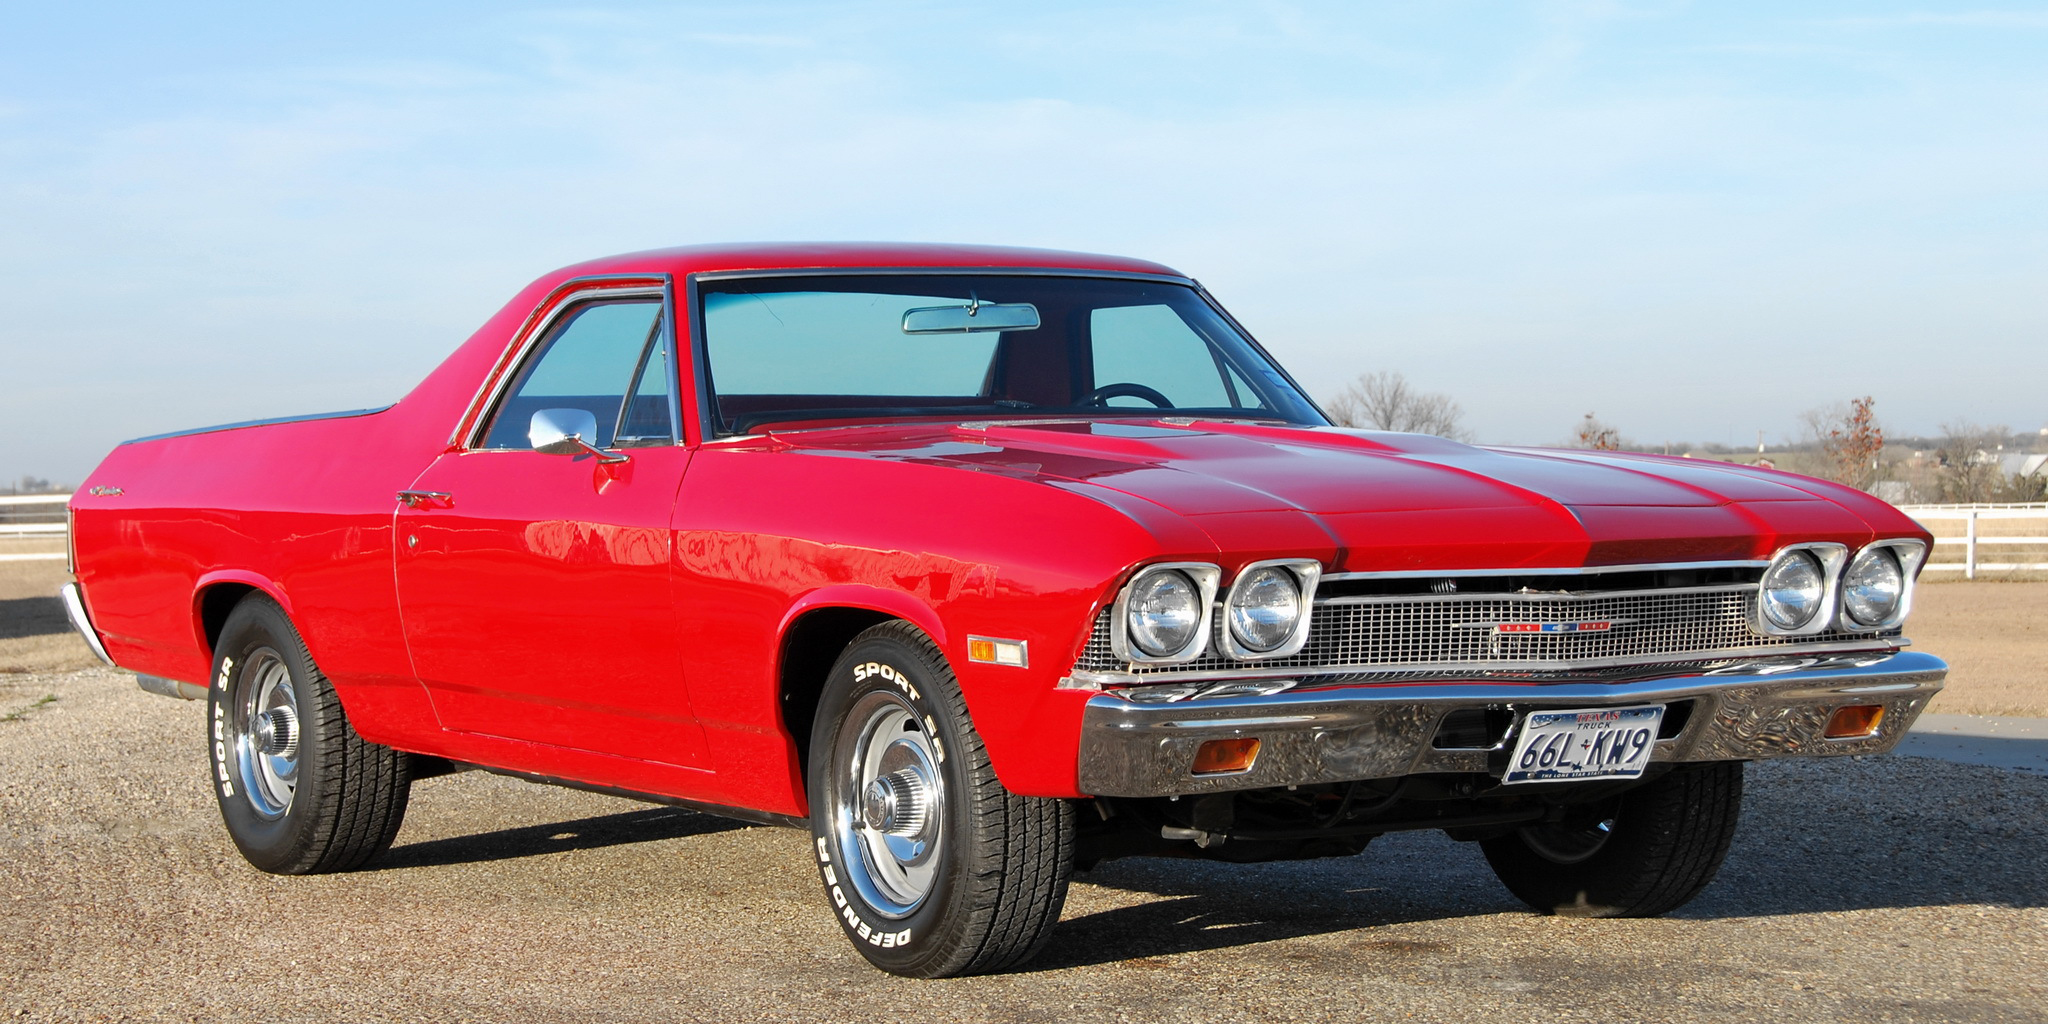 Ten Cool Classic Cars For The Collector On A Budget on best chevy muscle cars